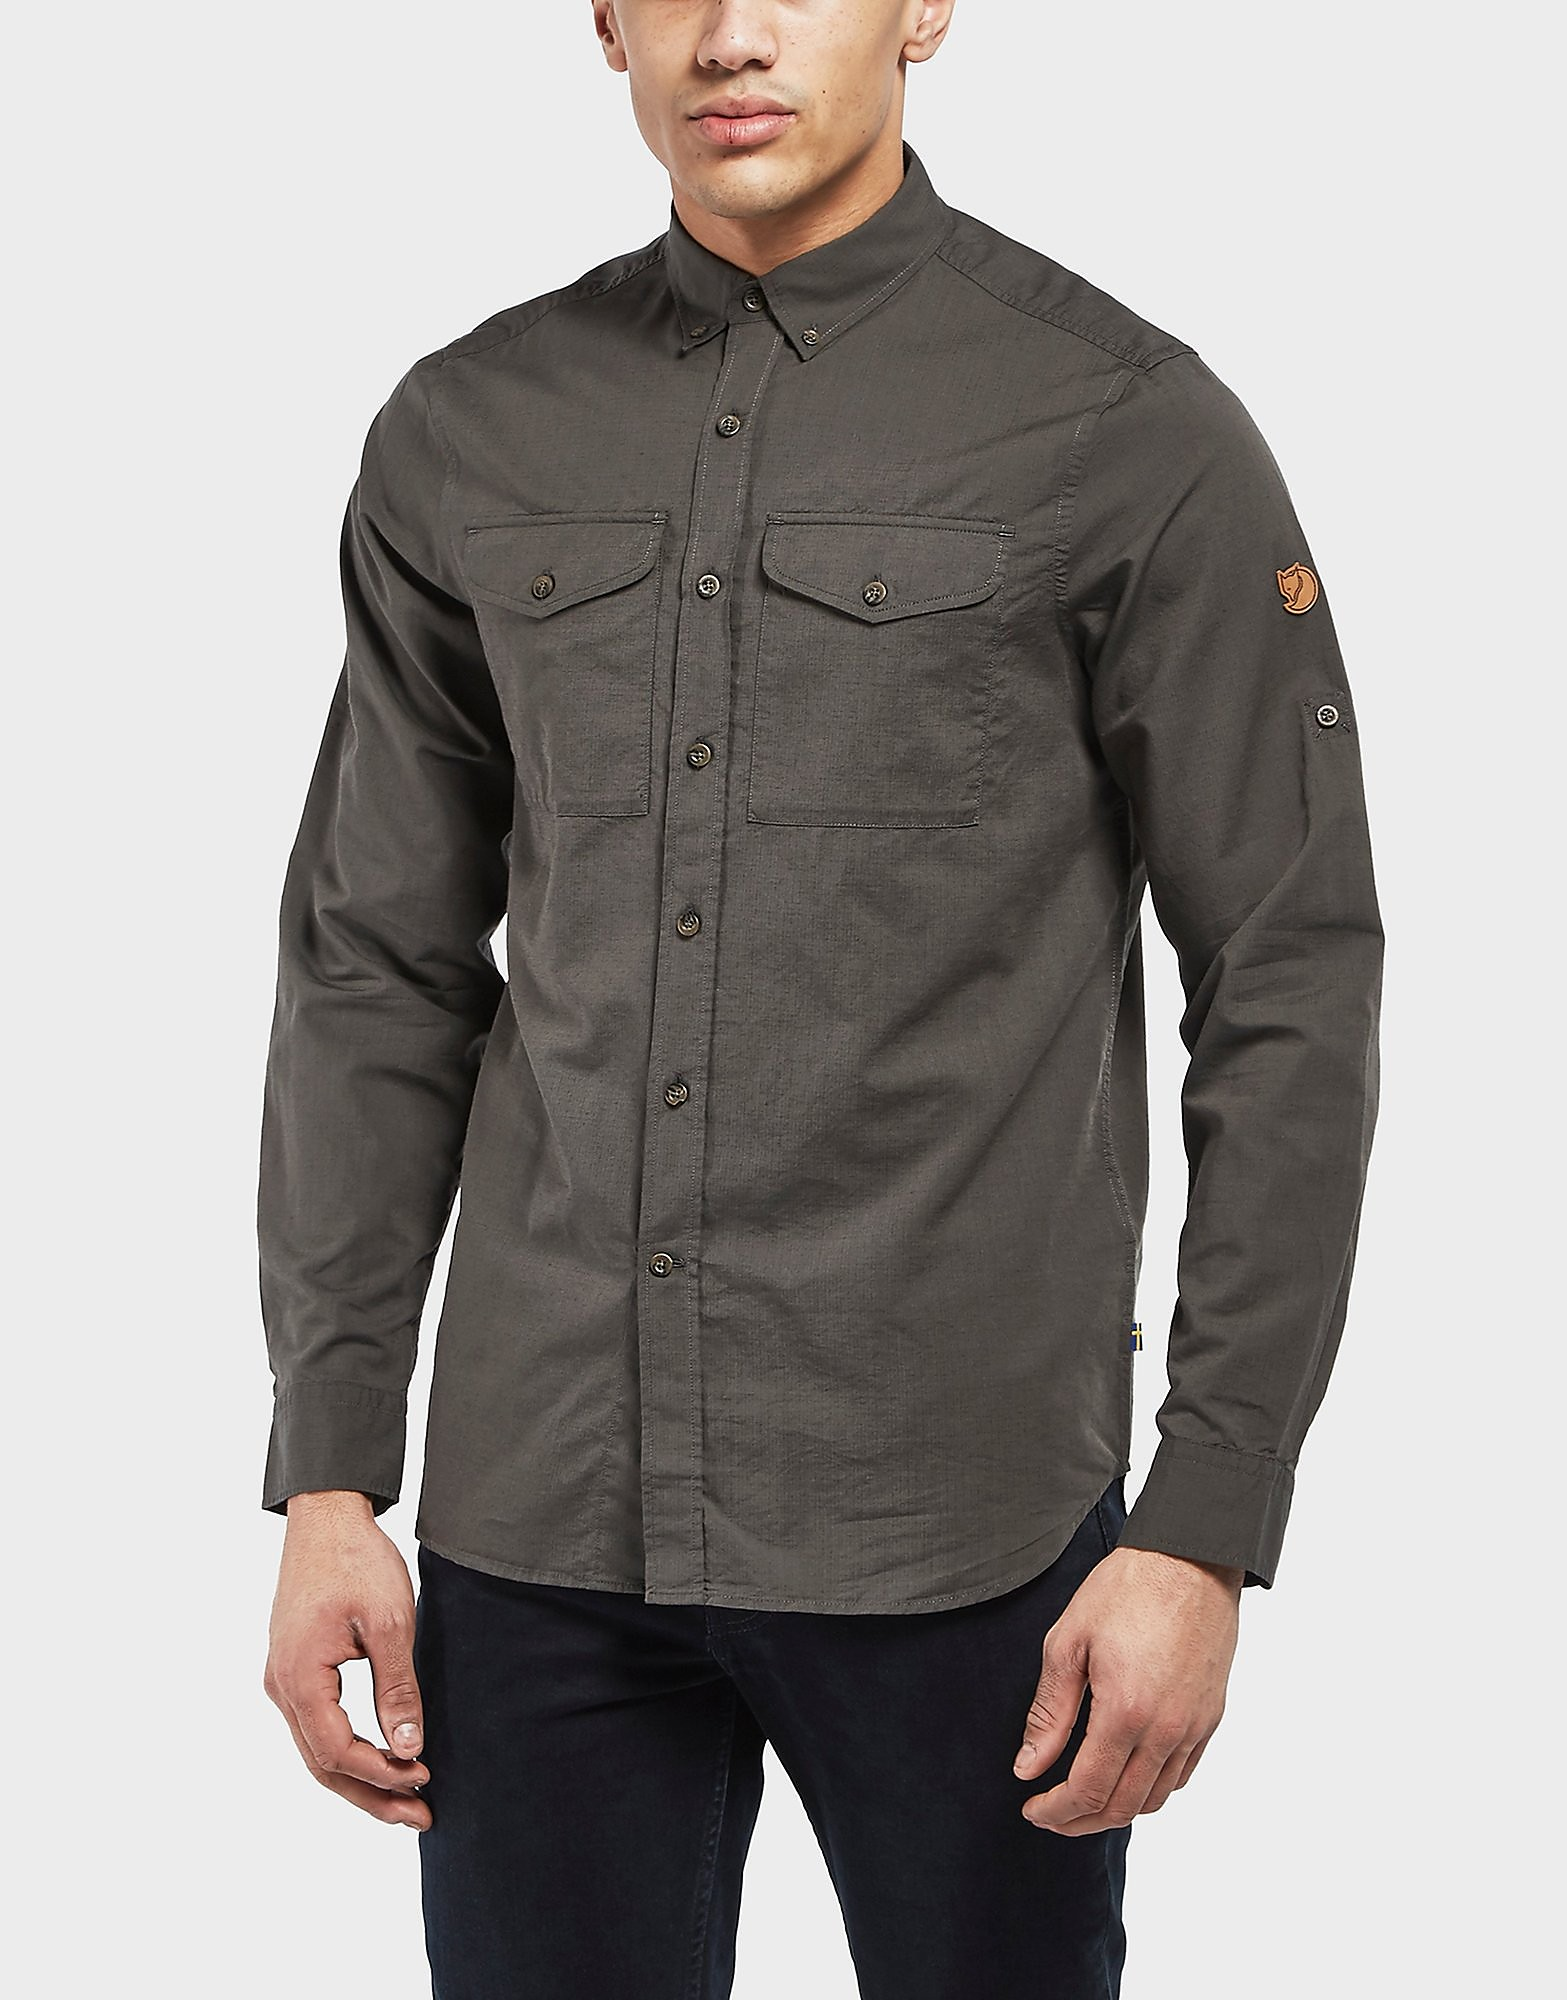 Fjallraven Ovik Lite Long Sleeve Shirt